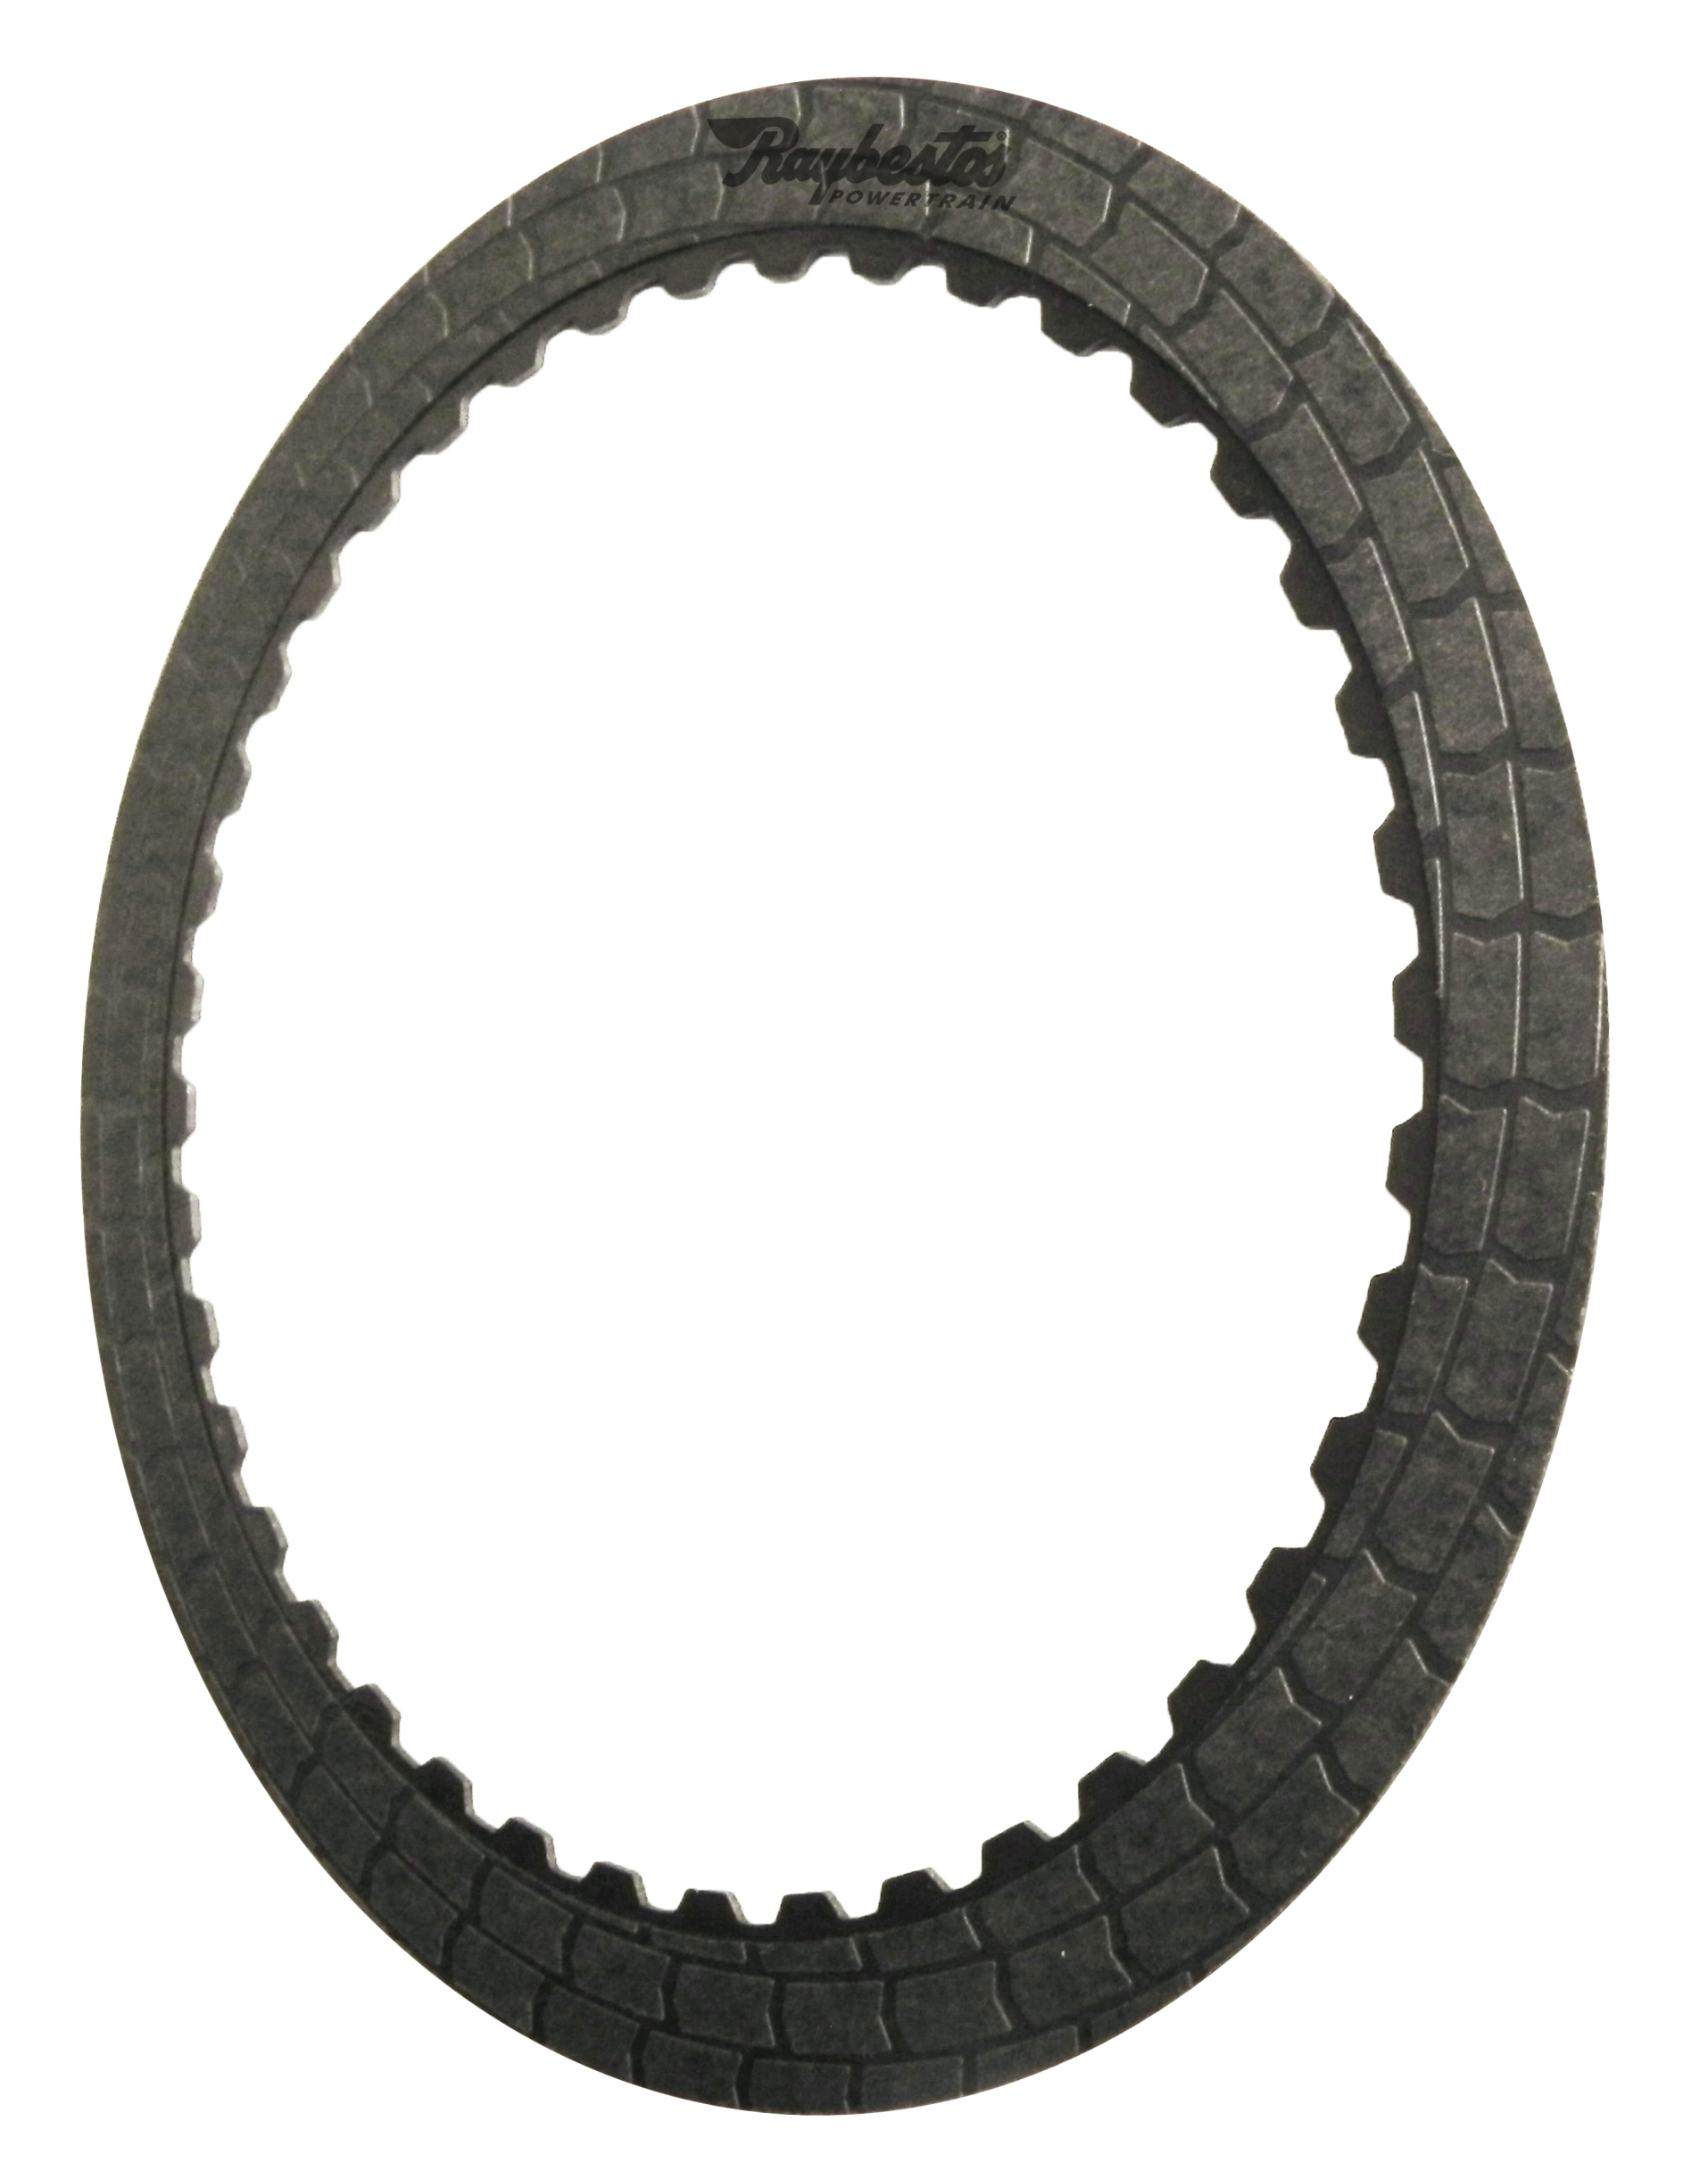 RH576635 | 2003-ON Friction Clutch Plate (HT) Hybrid Technology #2 Proprietary High Energy (HT)